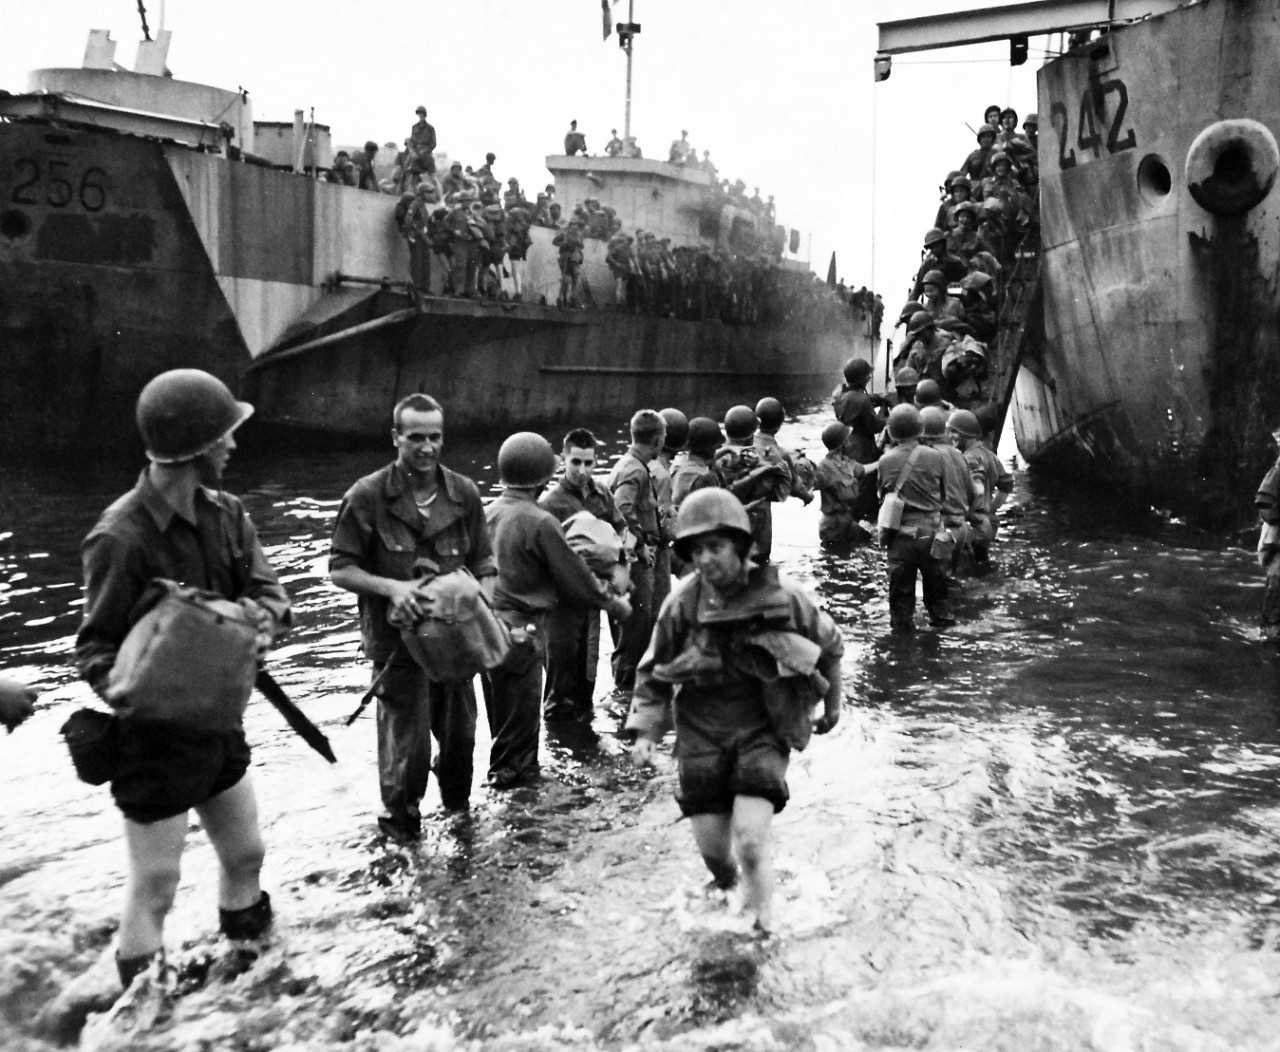 80-G-54371:   Naples, Italy, November 1943.   U.S. Army nurses and soldiers at Naples, Italy, wading ashore from LCI-242.   The nurse in the foreground carries her boots around her neck for safekeeping.   Photograph released November 4, 1943.  U.S. Navy photograph, now in the collections of the National Archives.  (2016/06/28).